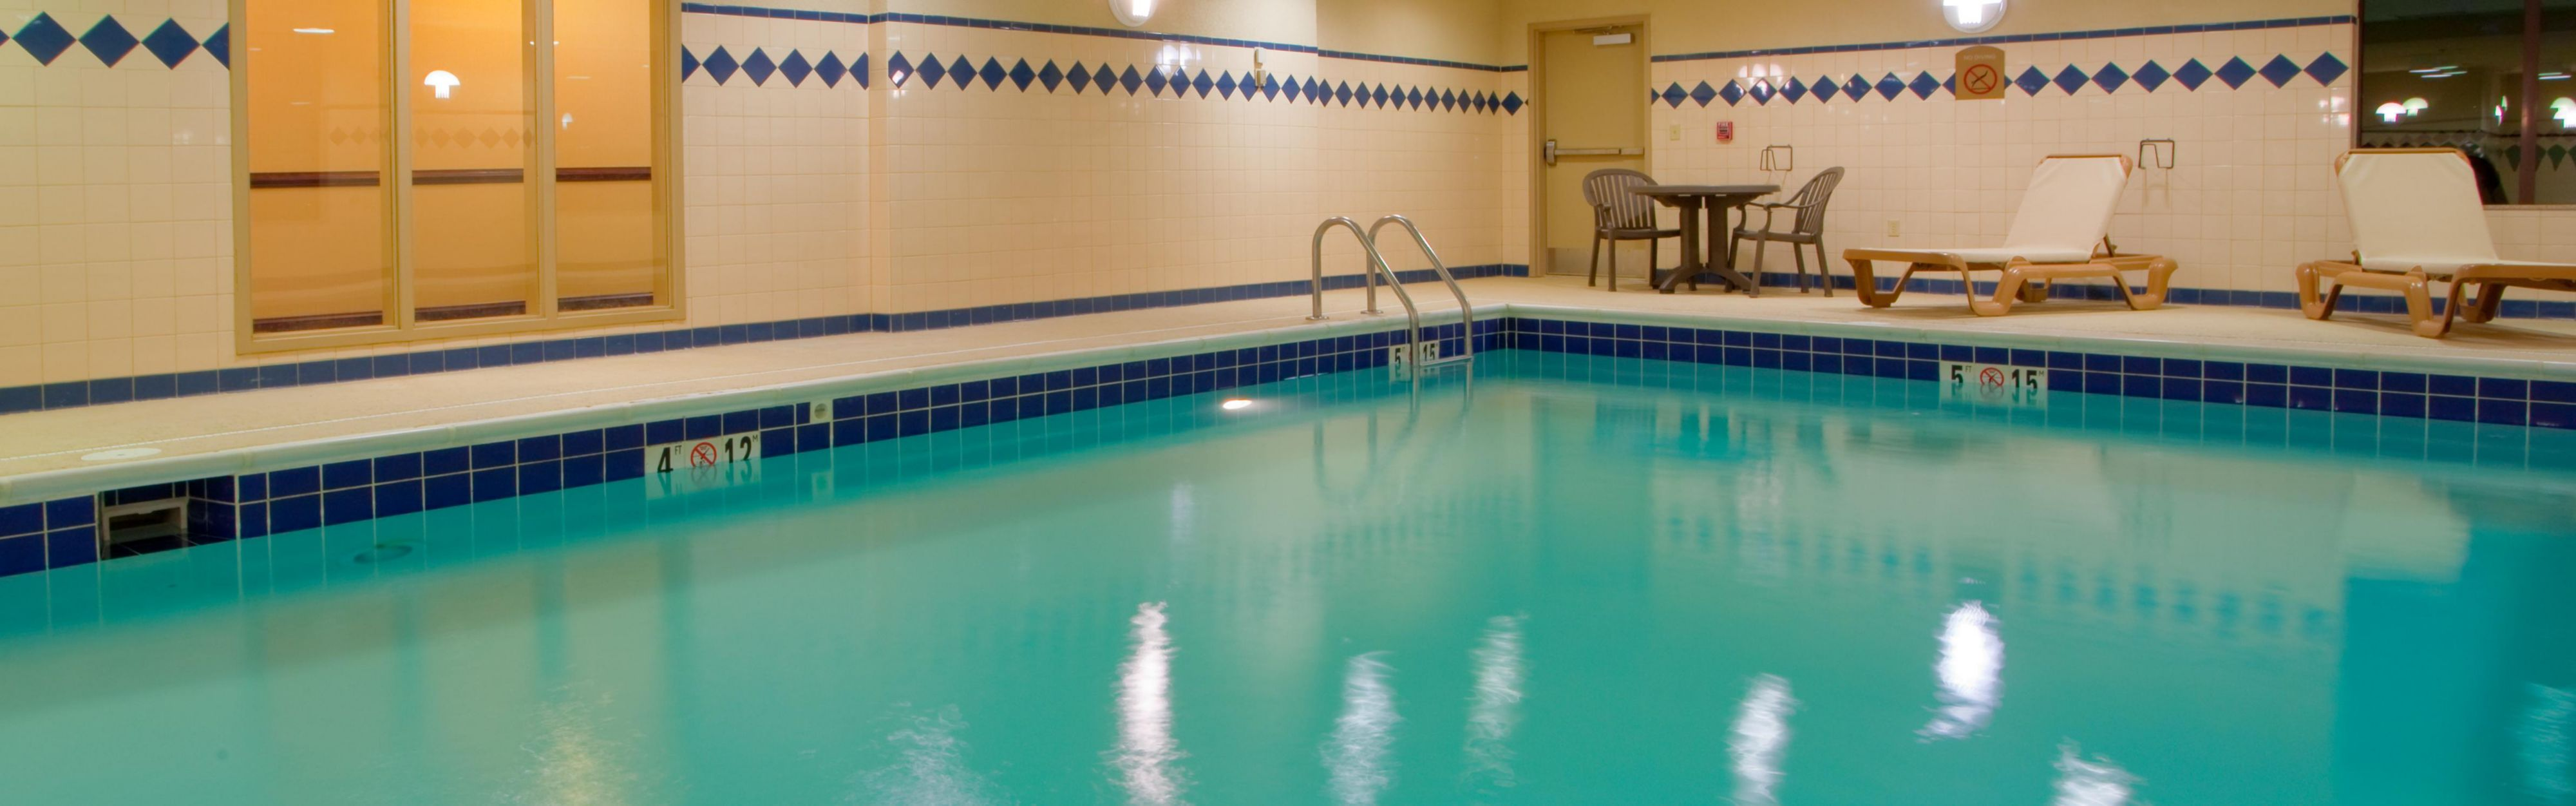 Holiday Inn Express & Suites Tappahannock image 2